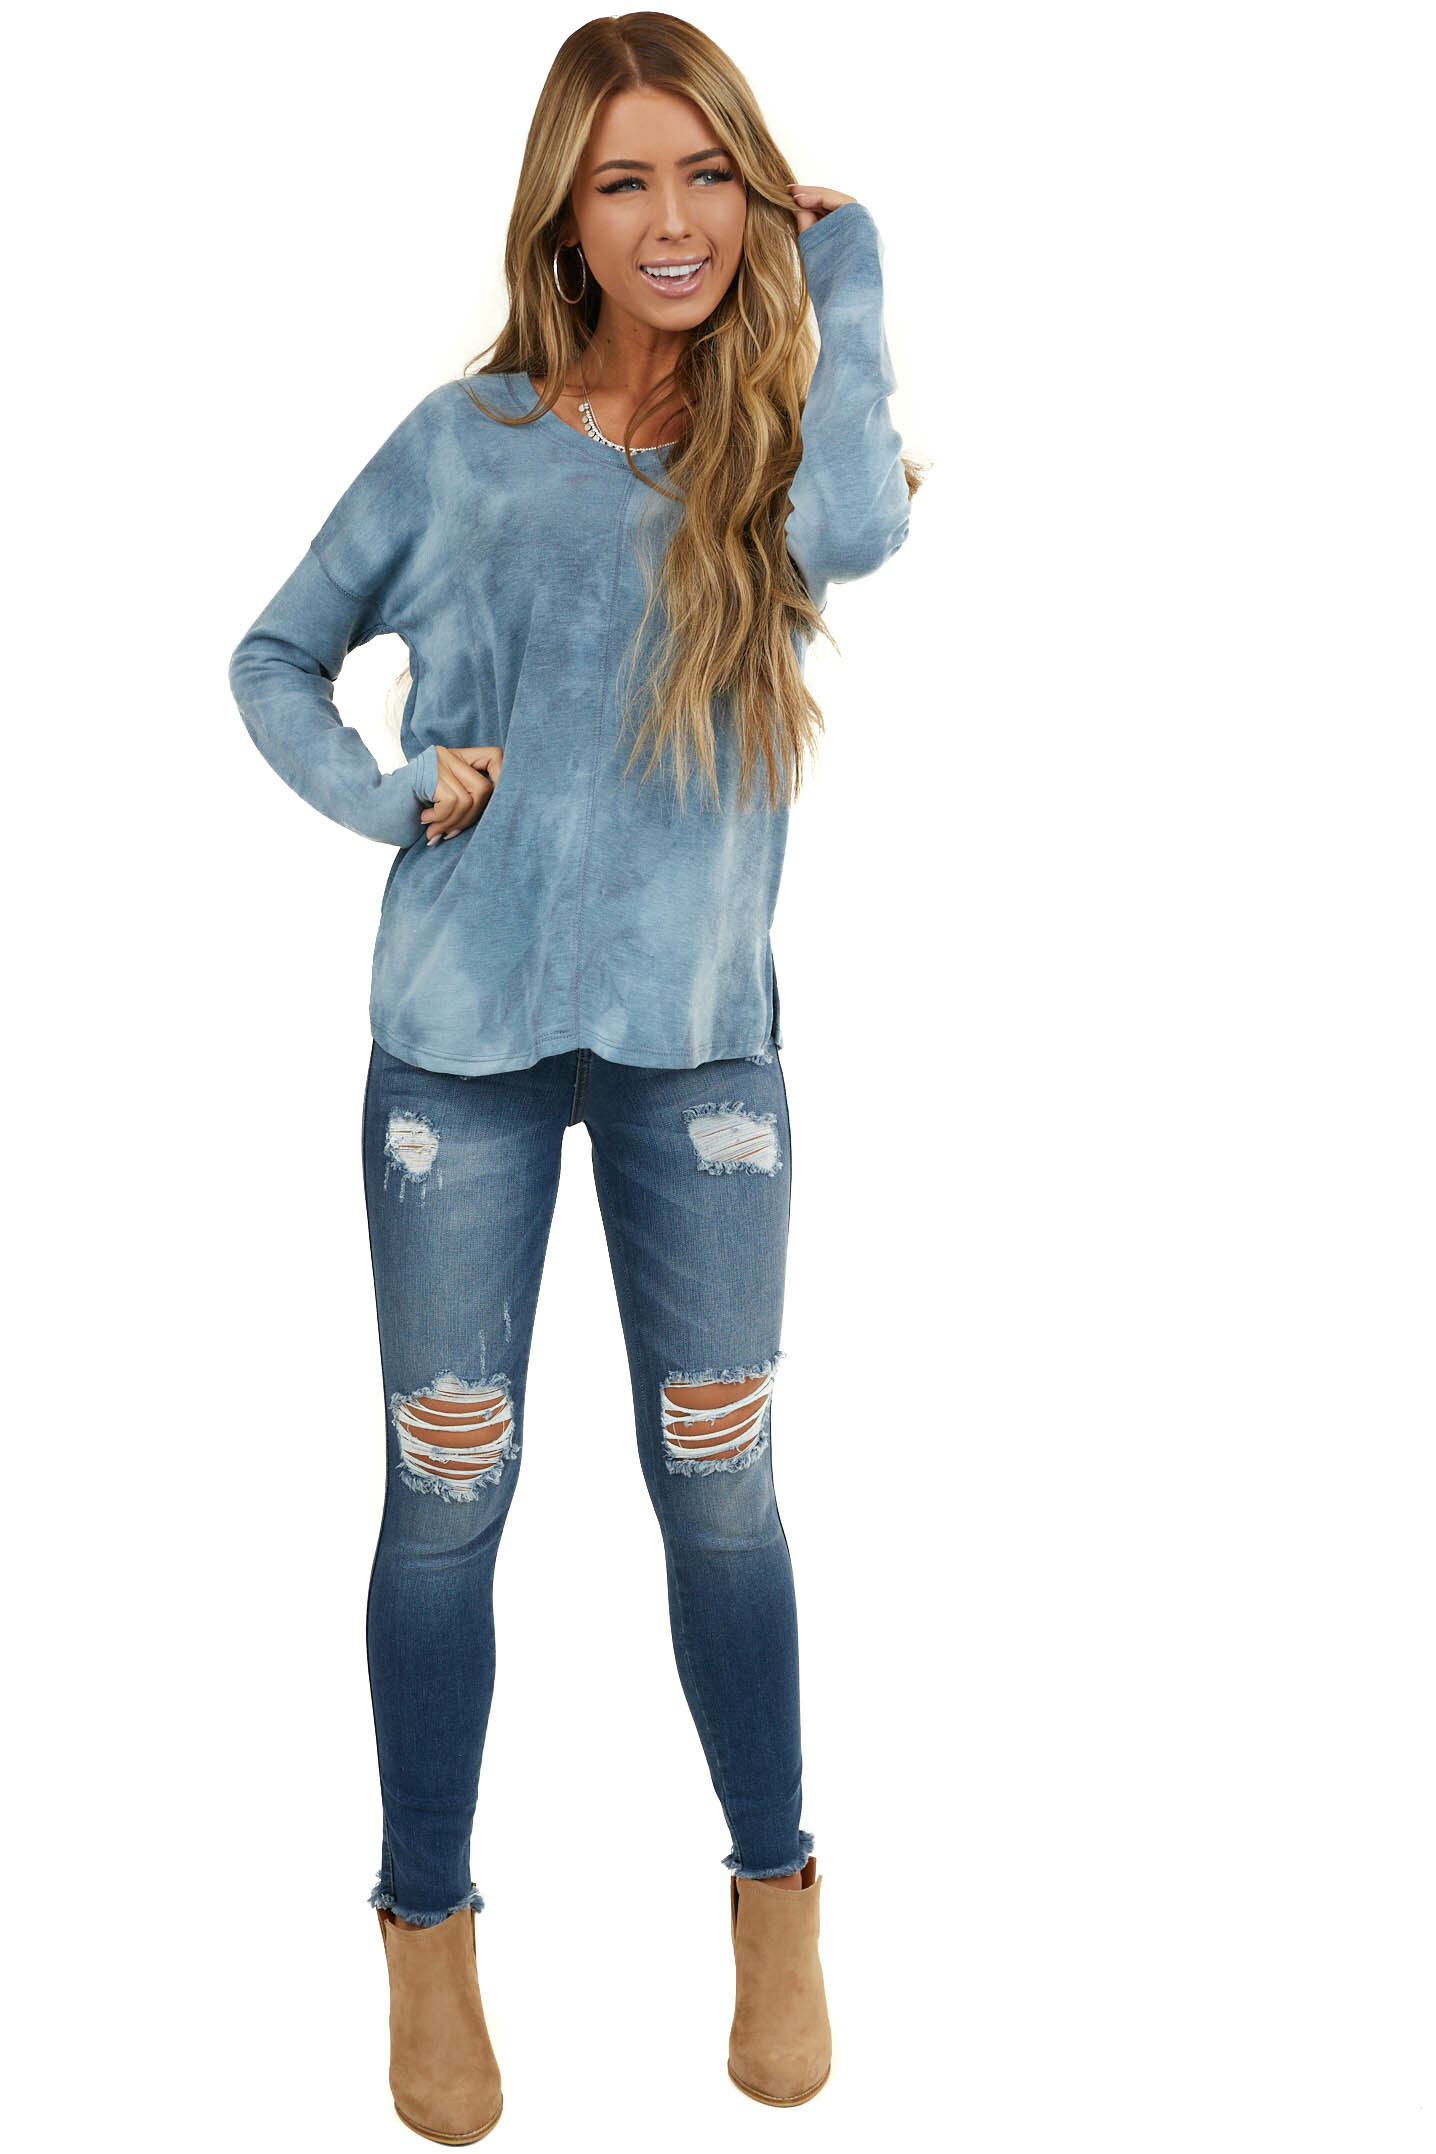 Dusty Blue Tie Dye Long Sleeve Top with Exposed Stitching